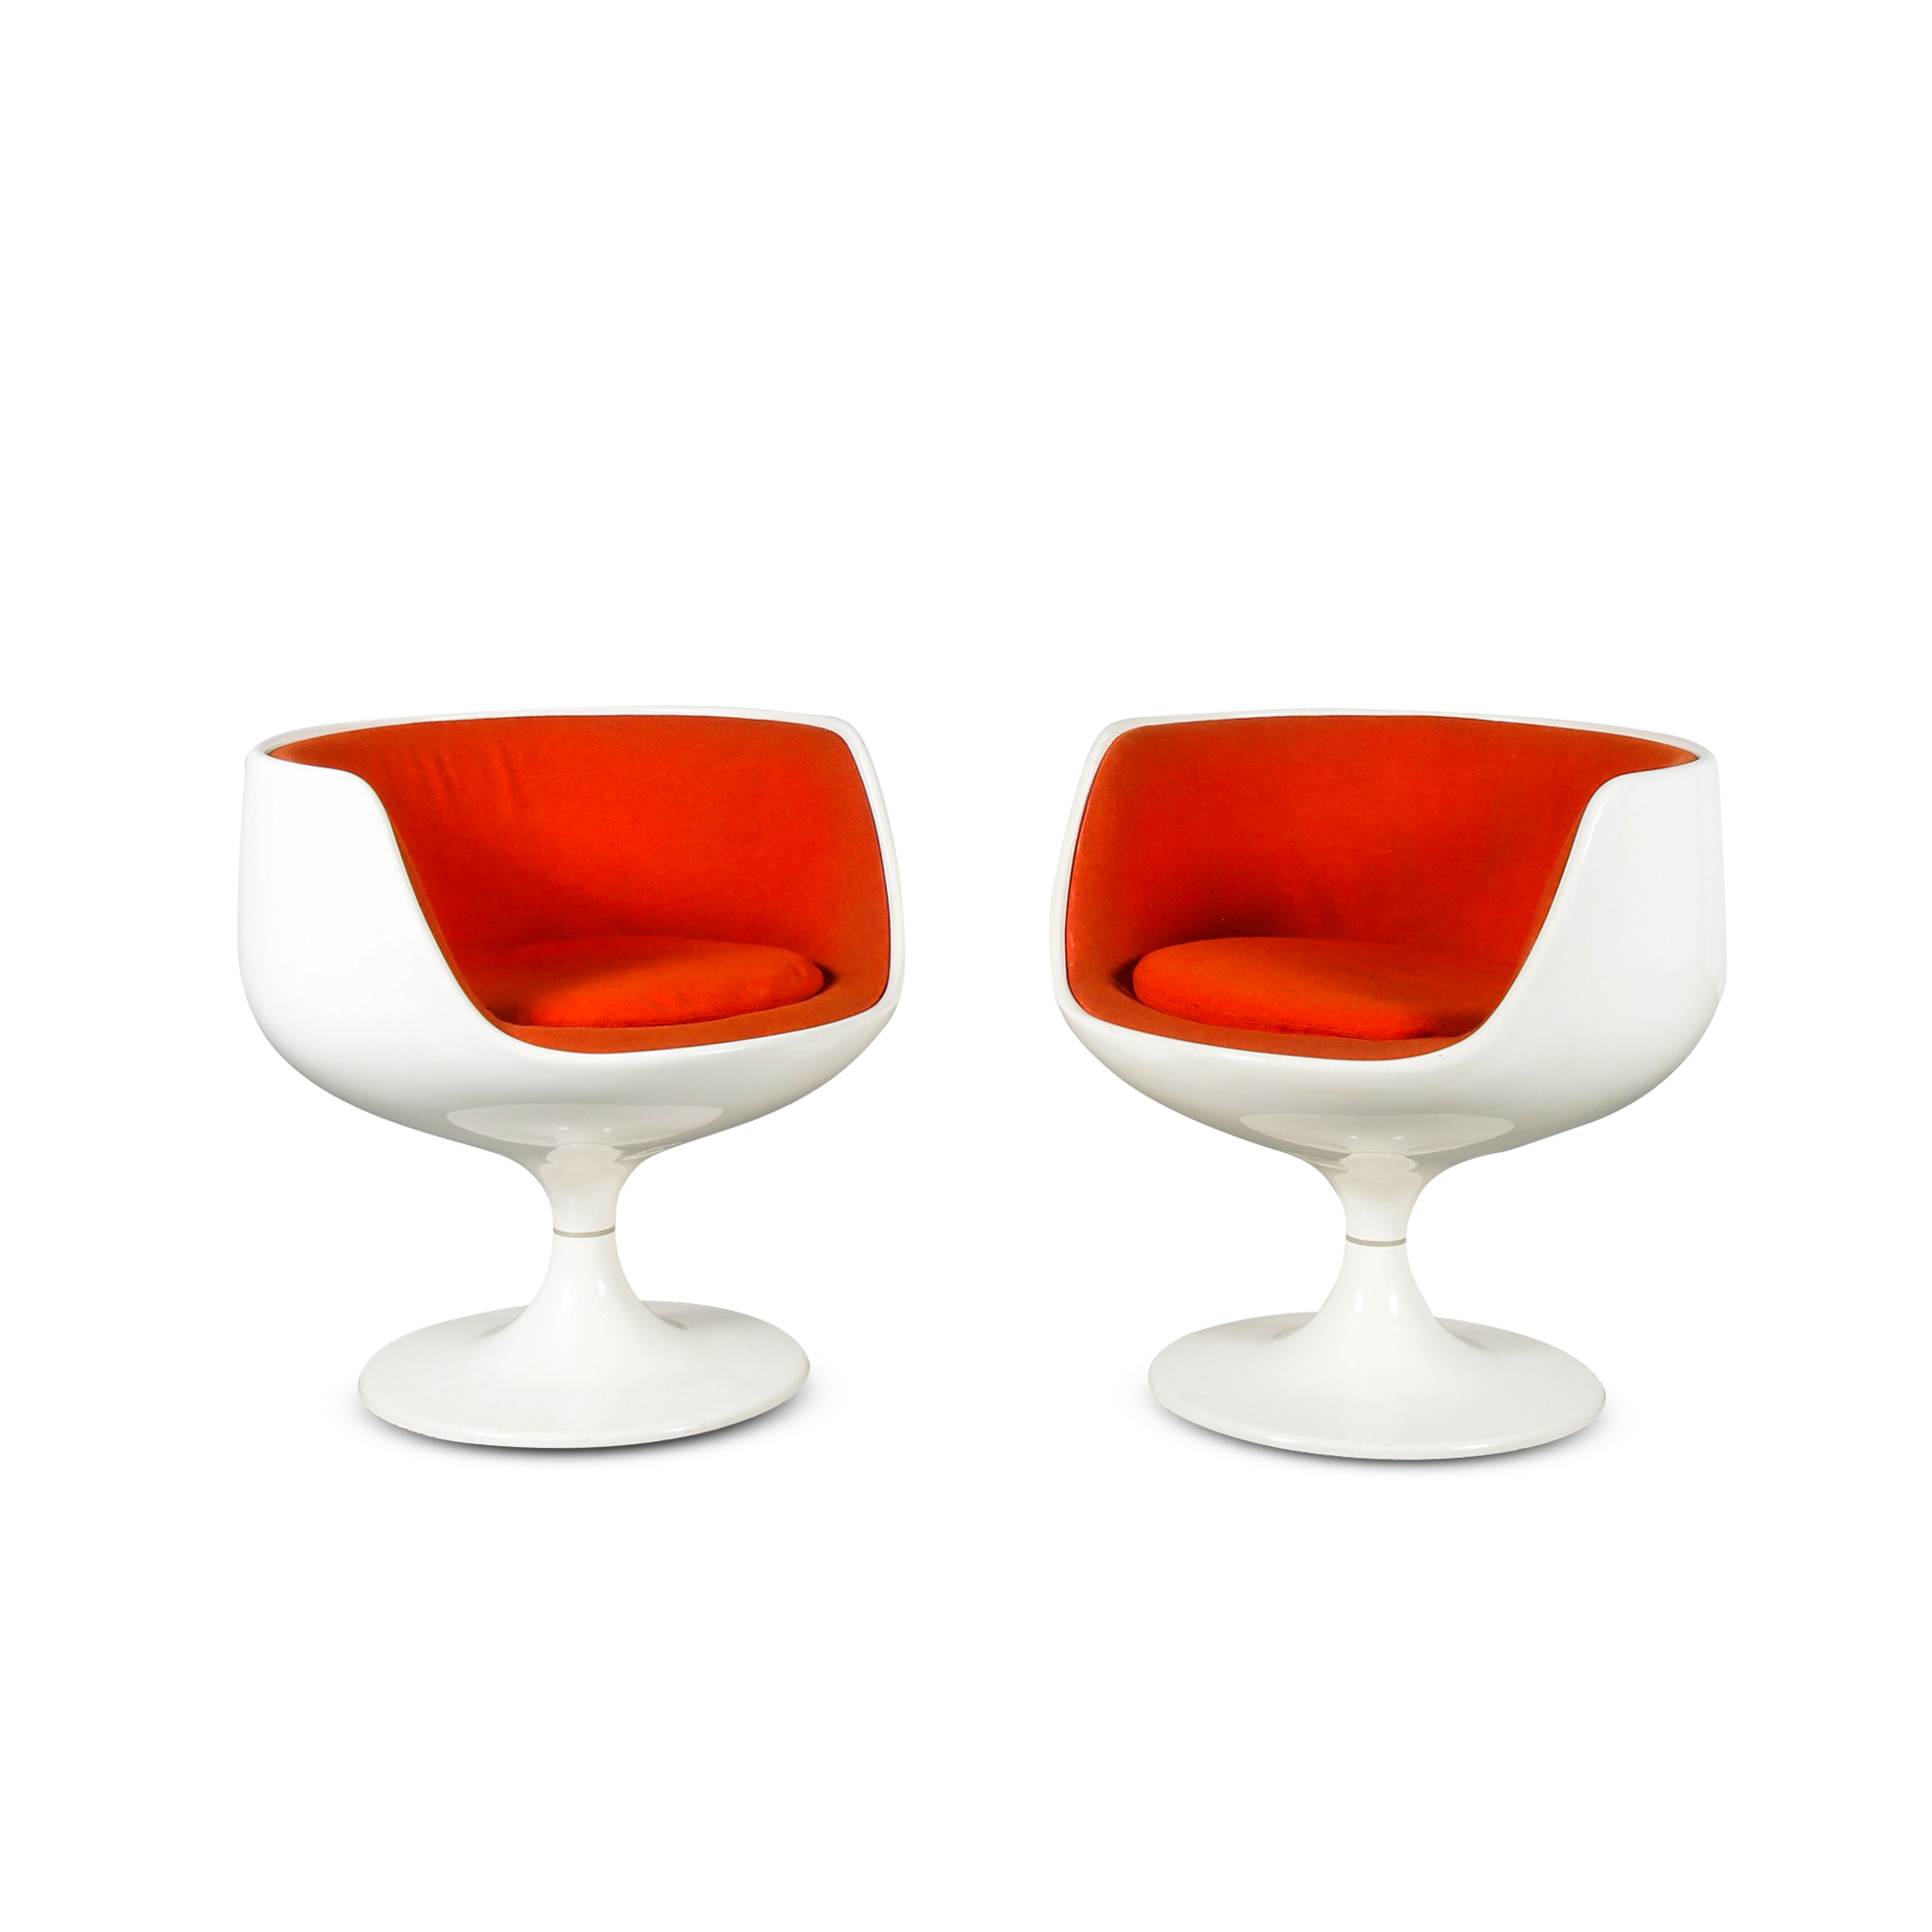 "1960s ""Cognac Chairs"" by Eero Aarnio for Asko, Finland 1960"